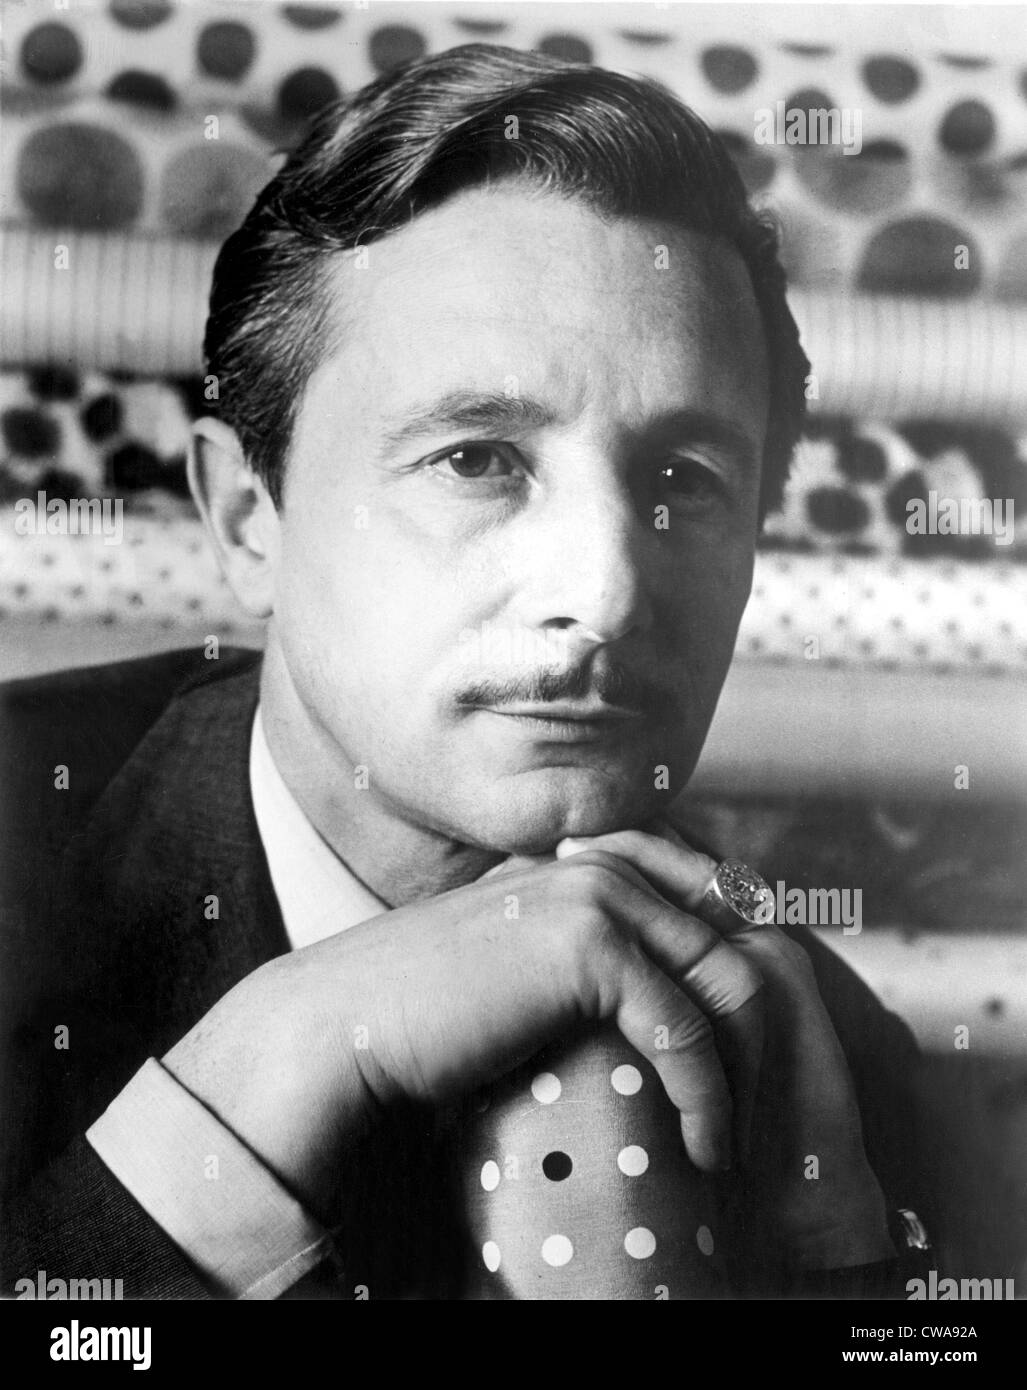 Oleg Cassini in a 1950s portrait.. Courtesy: CSU Archives / Everett Collection - Stock Image